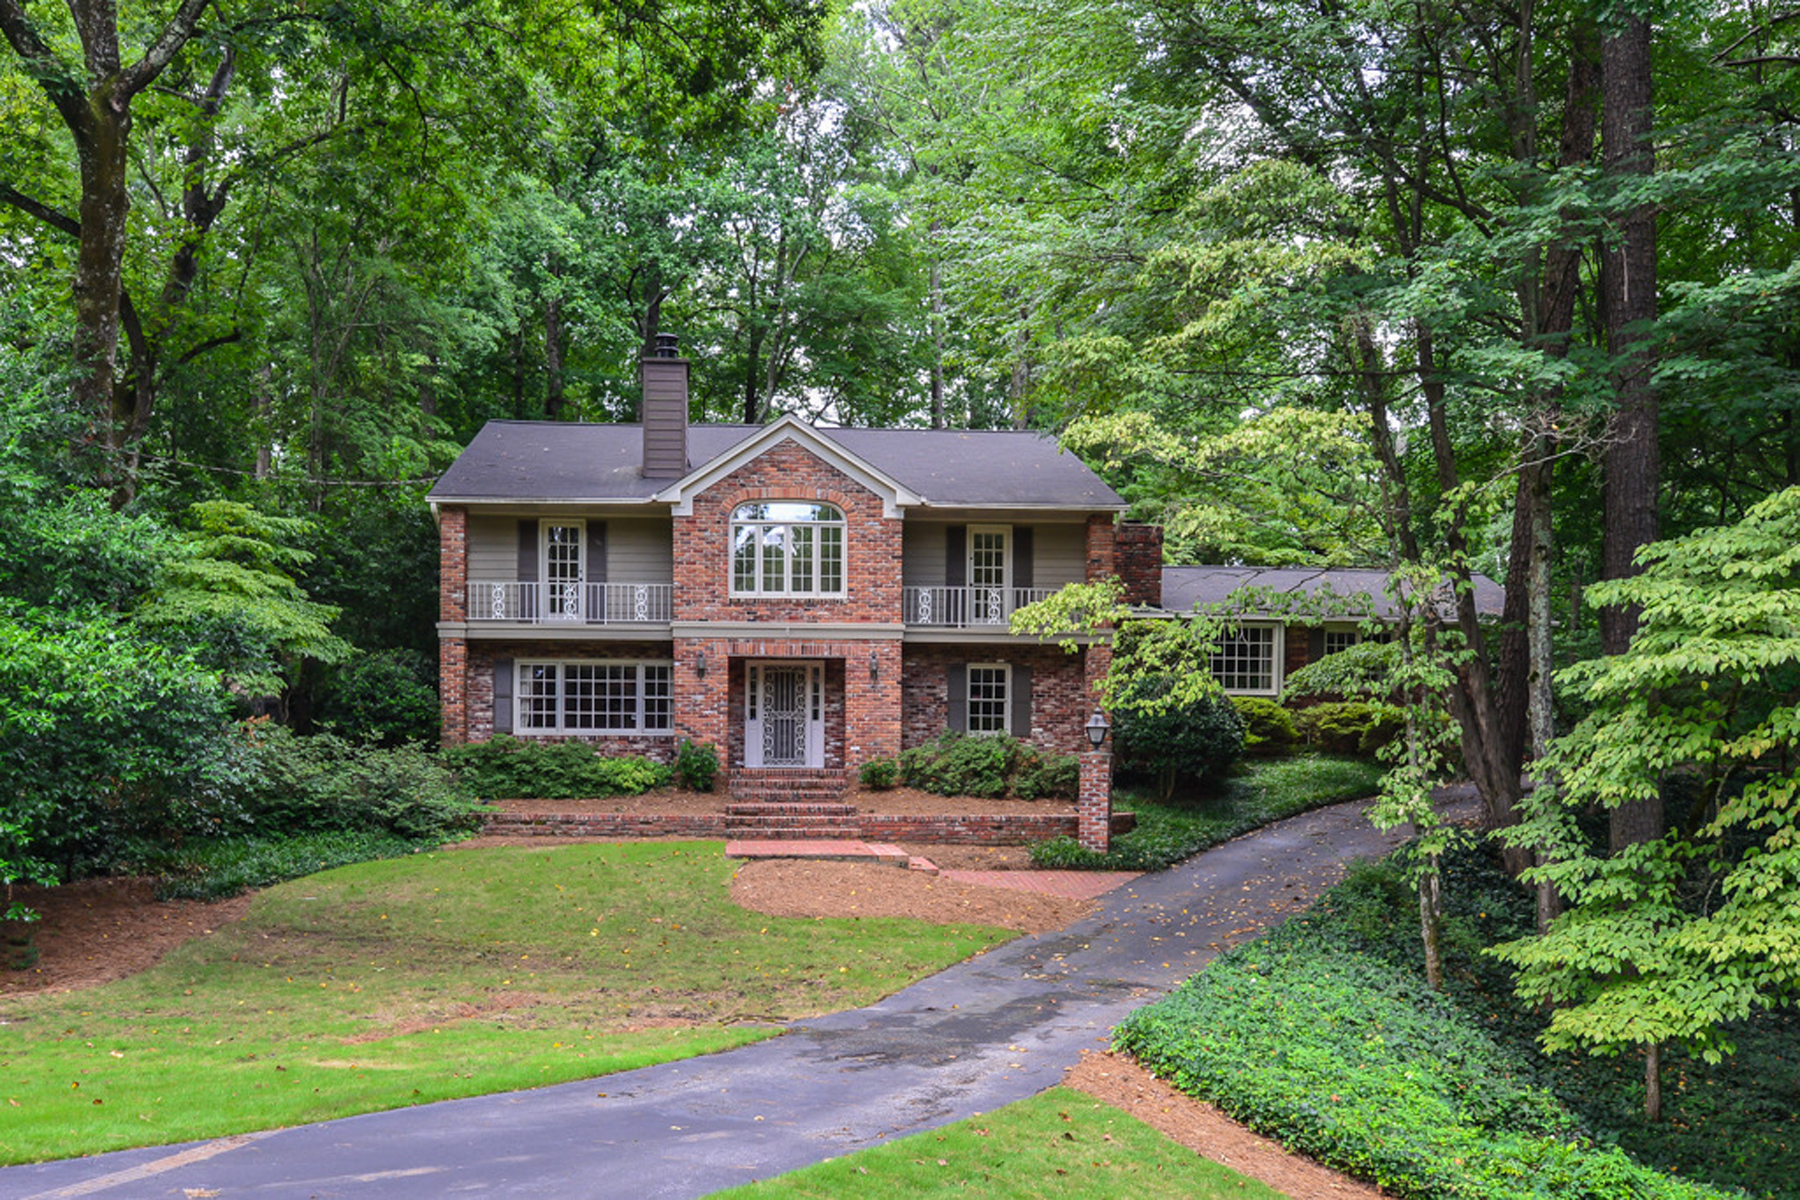 Maison unifamiliale pour l Vente à Sandy Springs - Riverside Traditional 6295 River Overlook Drive Sandy Springs, Georgia, 30328 États-Unis